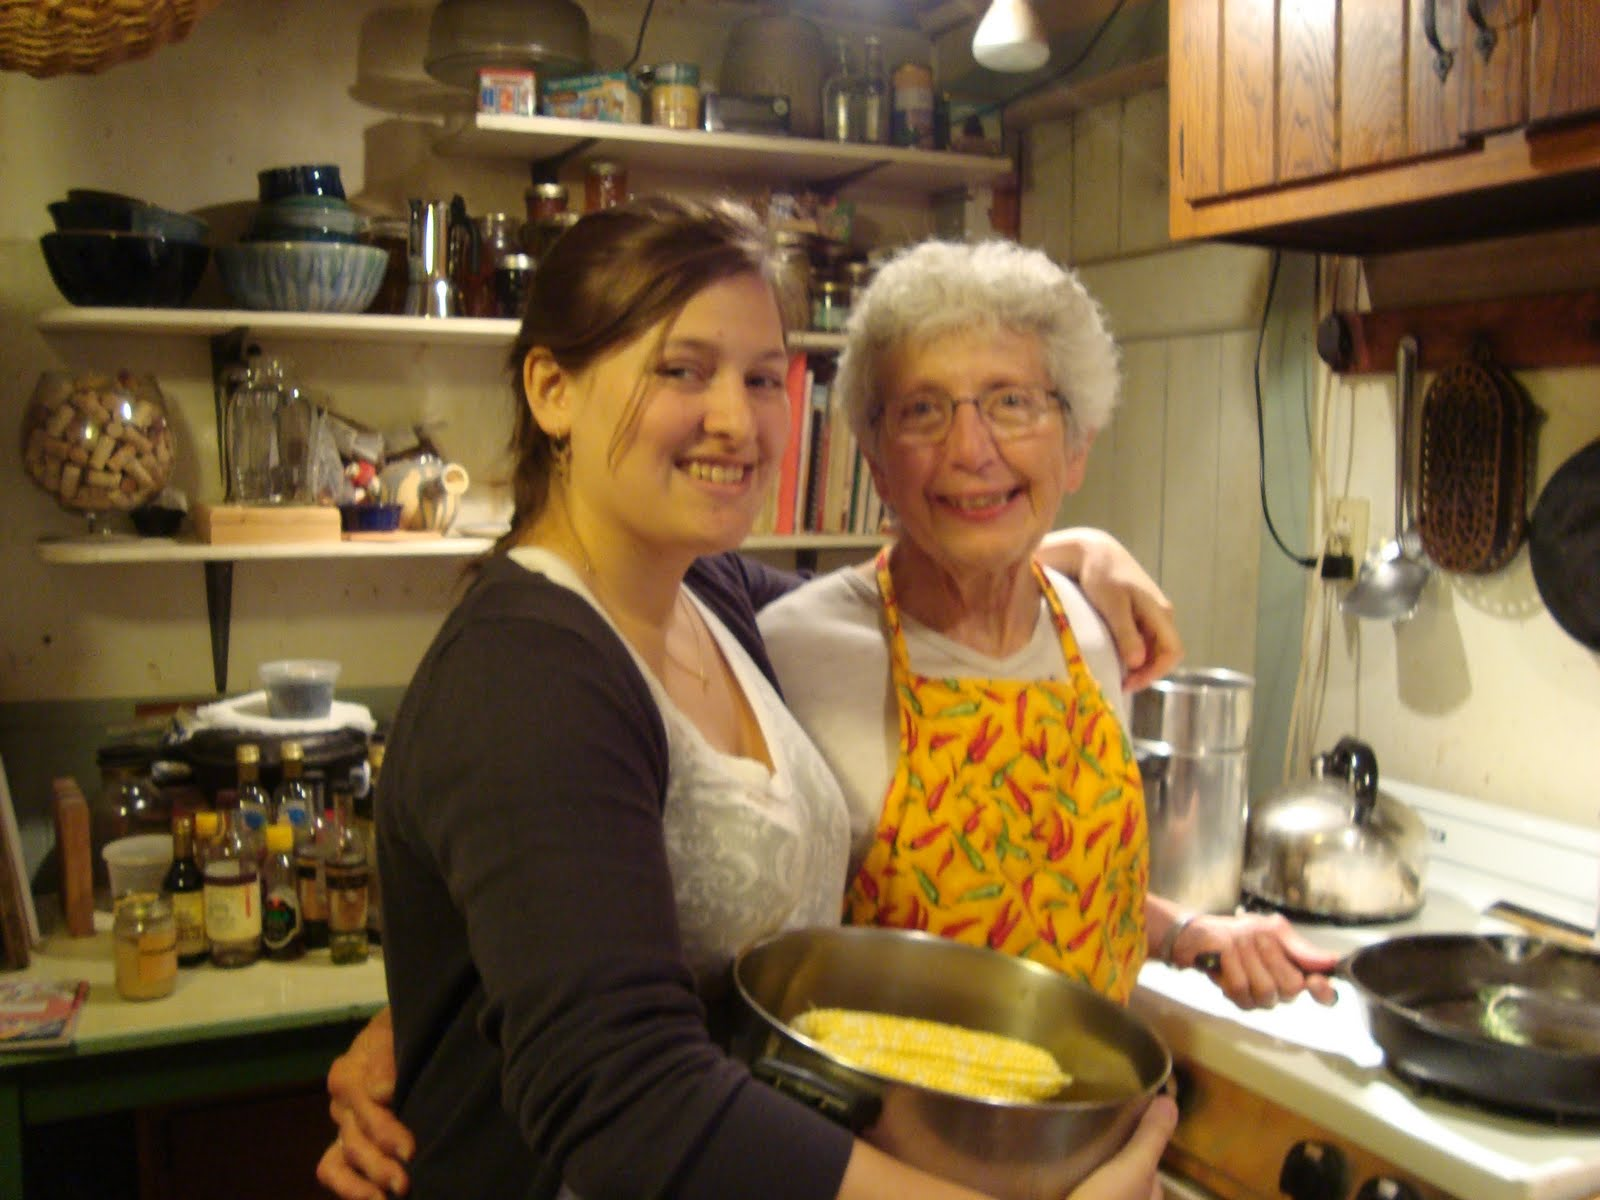 a memorable breakfast with my grandmother in italy My grandmother has taught me the cooking secrets of northern italy's piedmont region she orchestrates culinary masterpieces, and her recently i was granted an italian passport, and now i hold dual citizenship in italy and the united states with my grandmother's positive influences, i am.